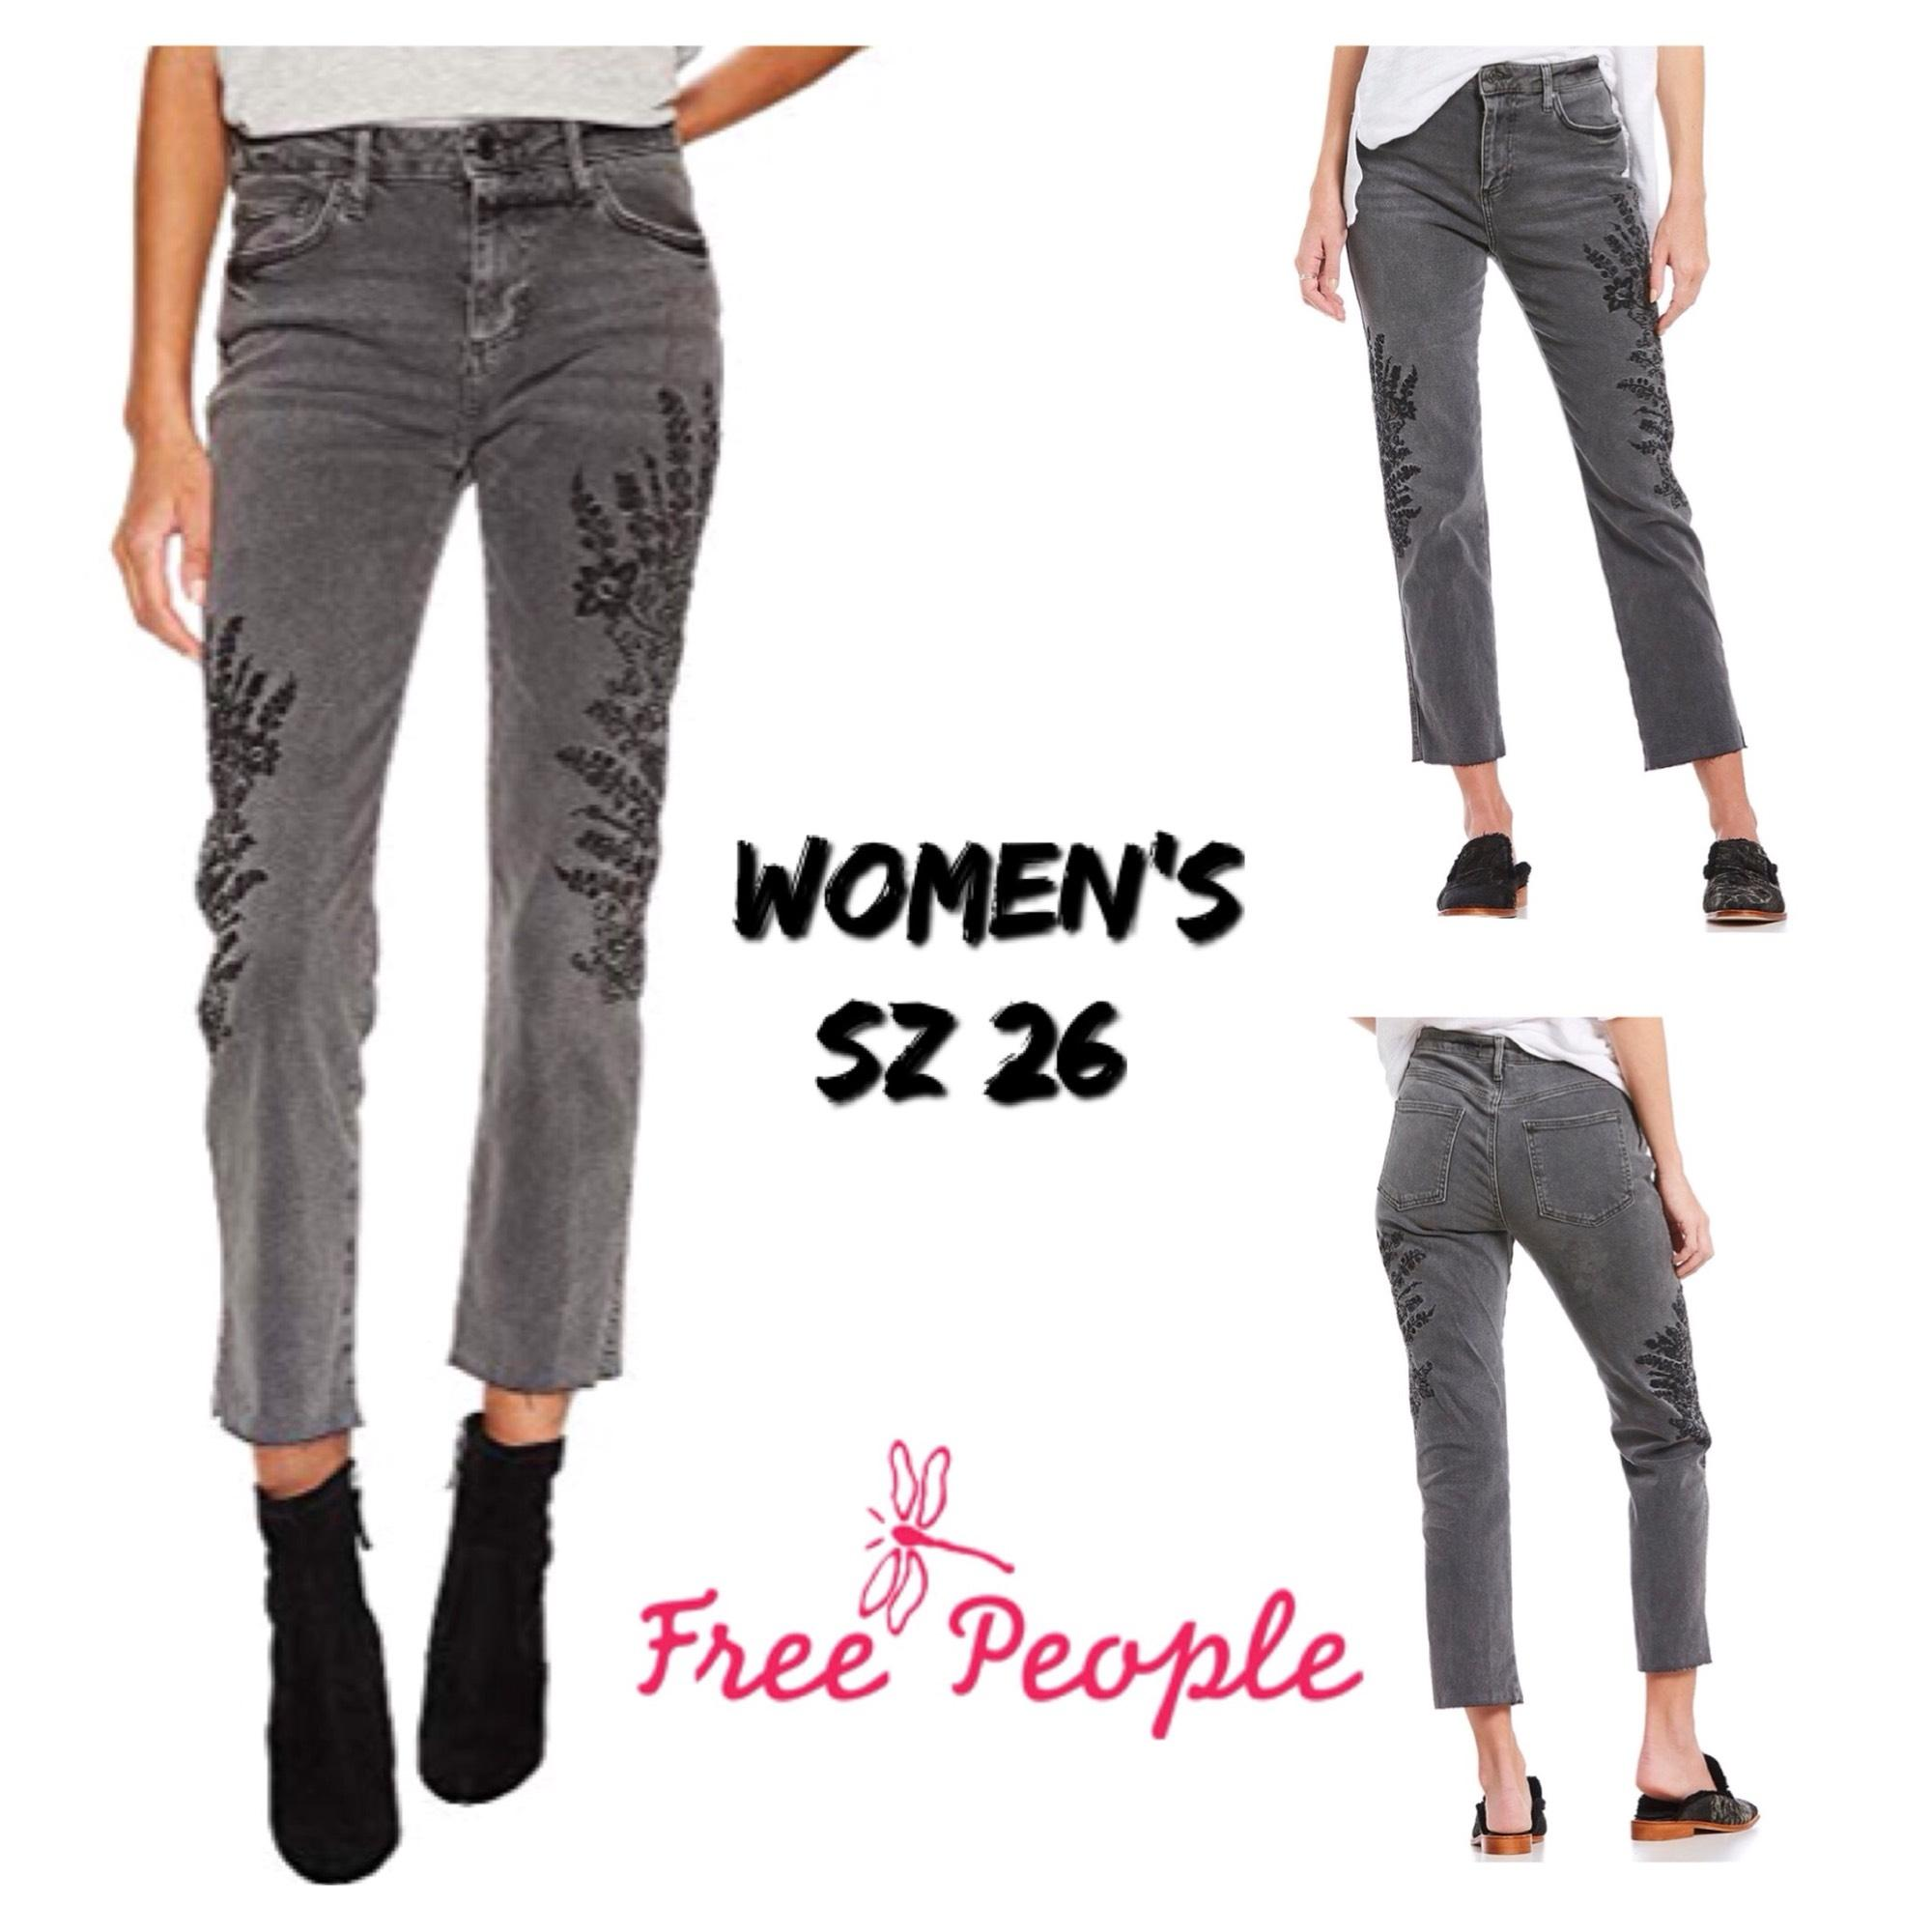 The majority of boyfriend cut pants are jeans. Jeans have become extremely popular for their casual feel. They can easily be paired with a t-shirt or other casual top on your day off.